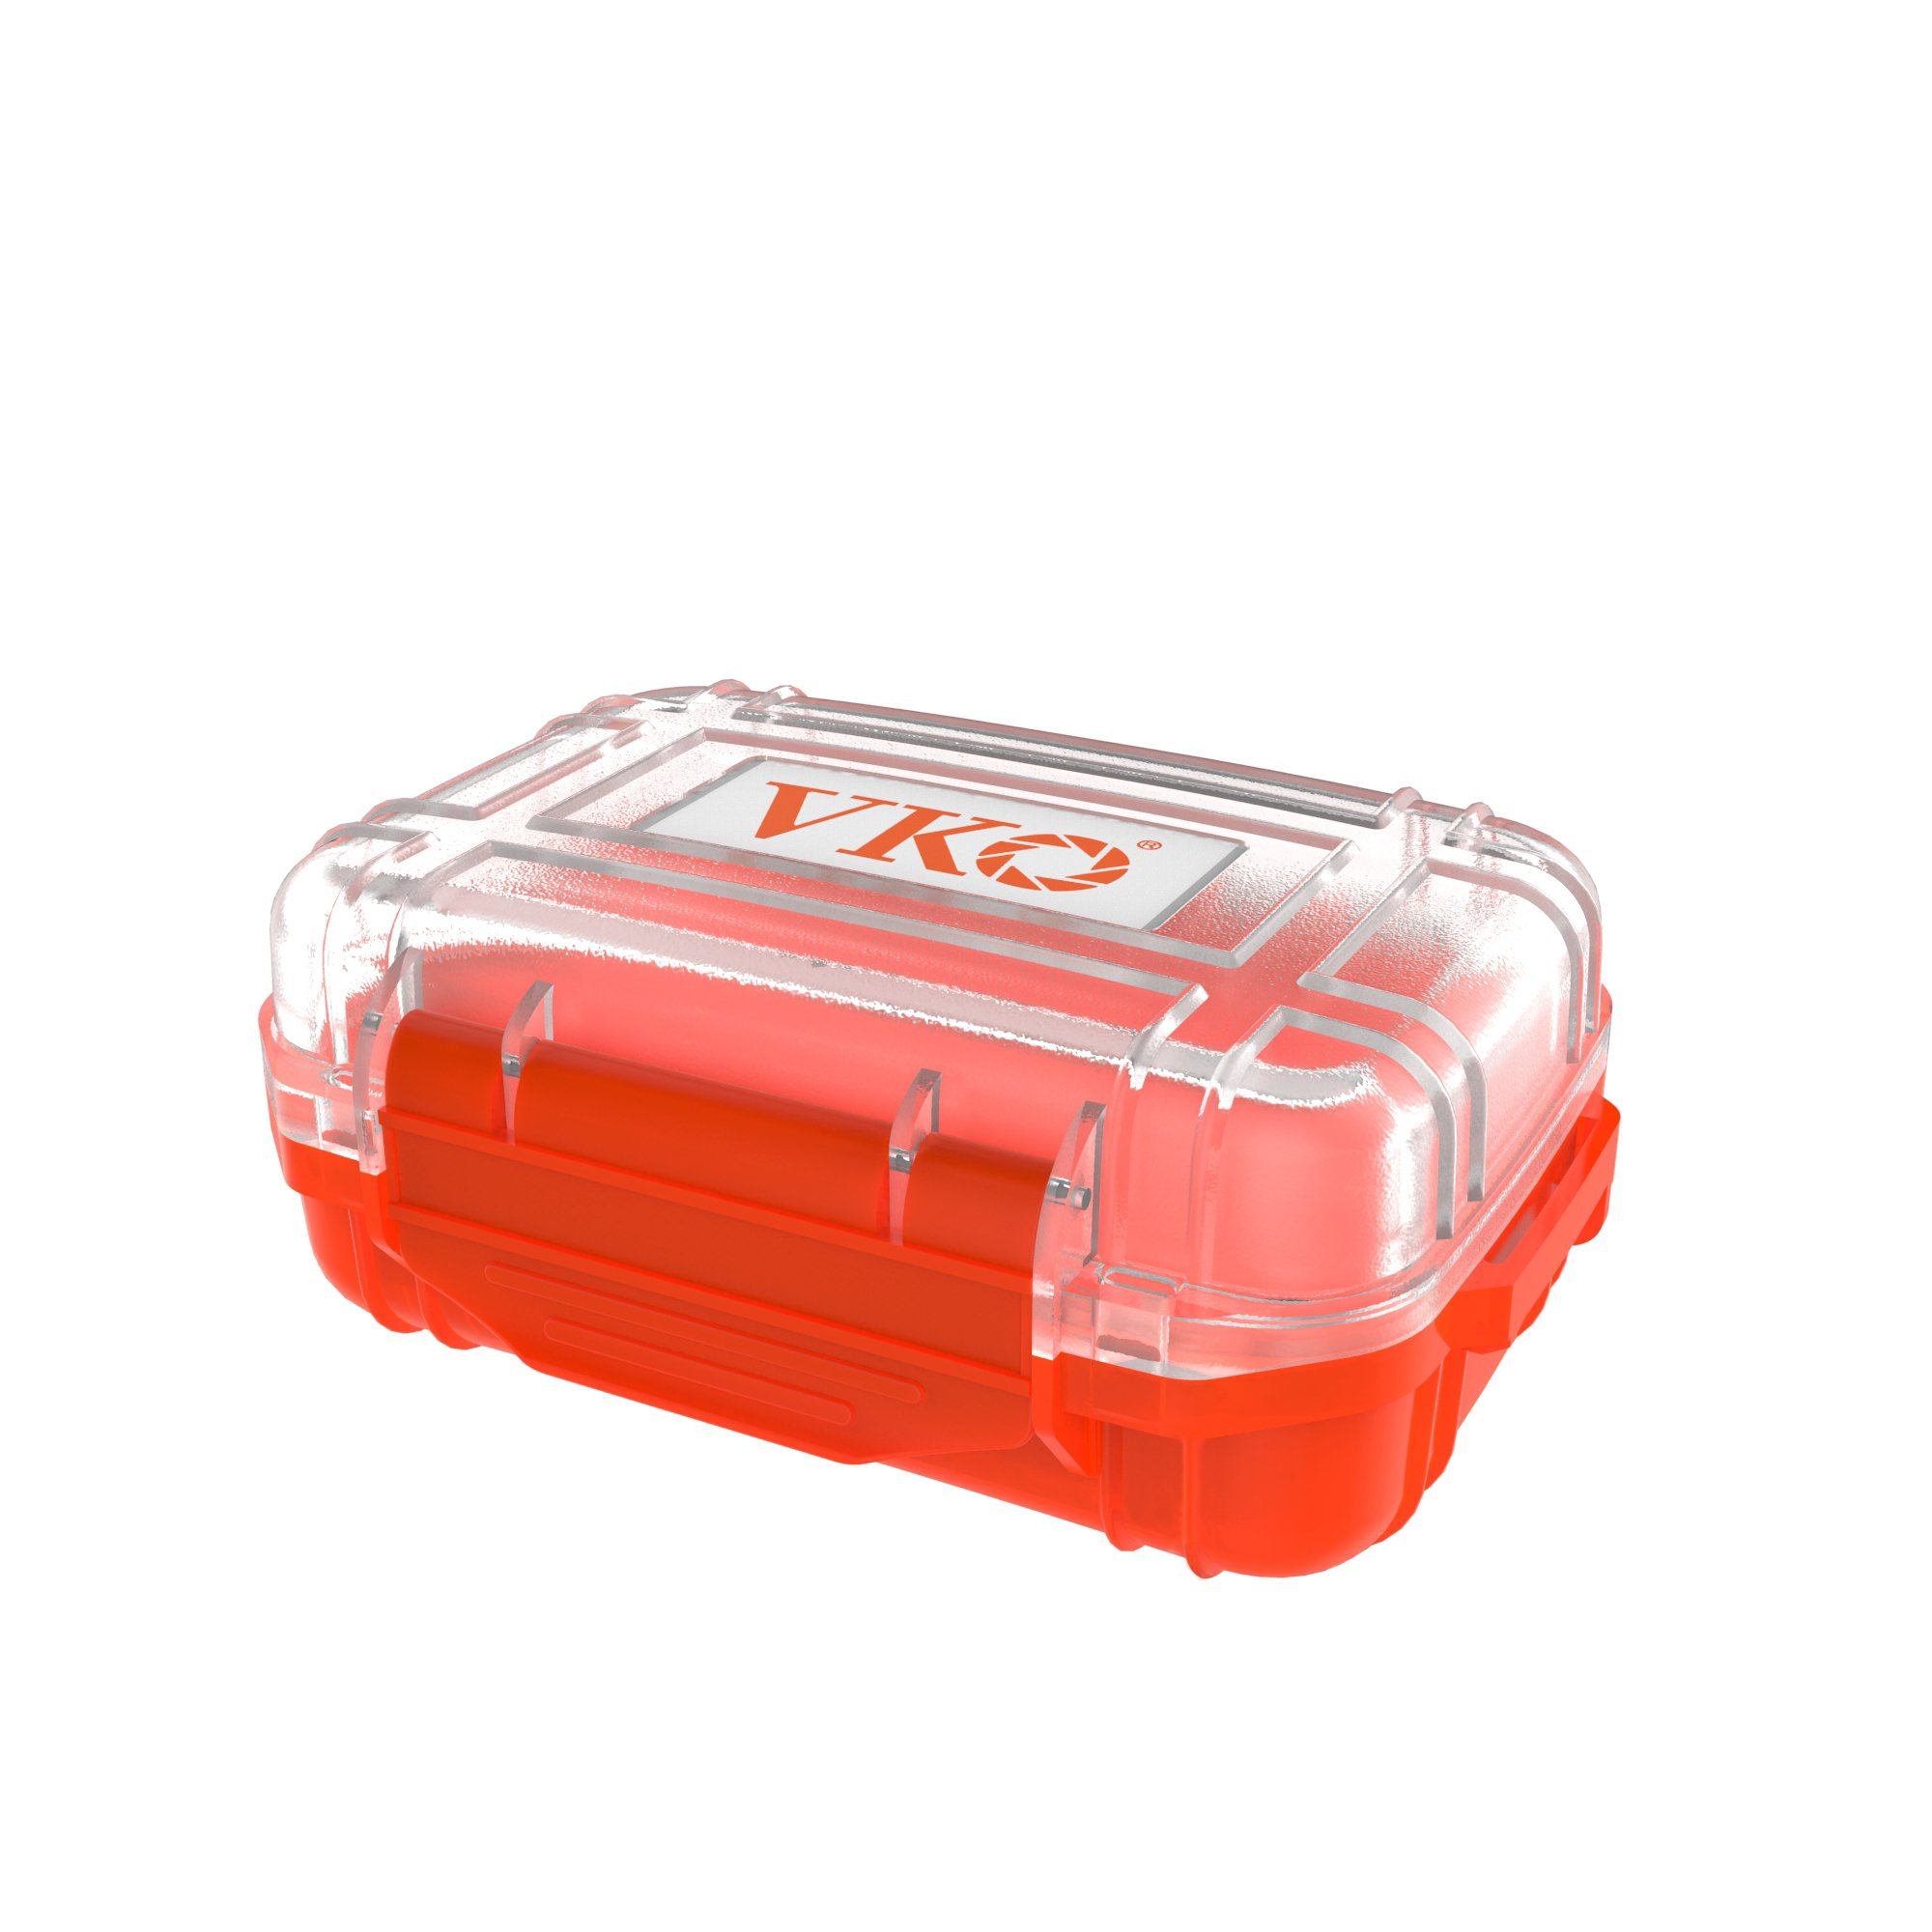 VKO 21 Slots SD Card Case,SD Card Holder,CF Card Case,CF Card Holder,Waterproof Shockproof Memory Card Case Holder Diving Dive Dry Box Container with Carabiner Hand Strap(Orange)